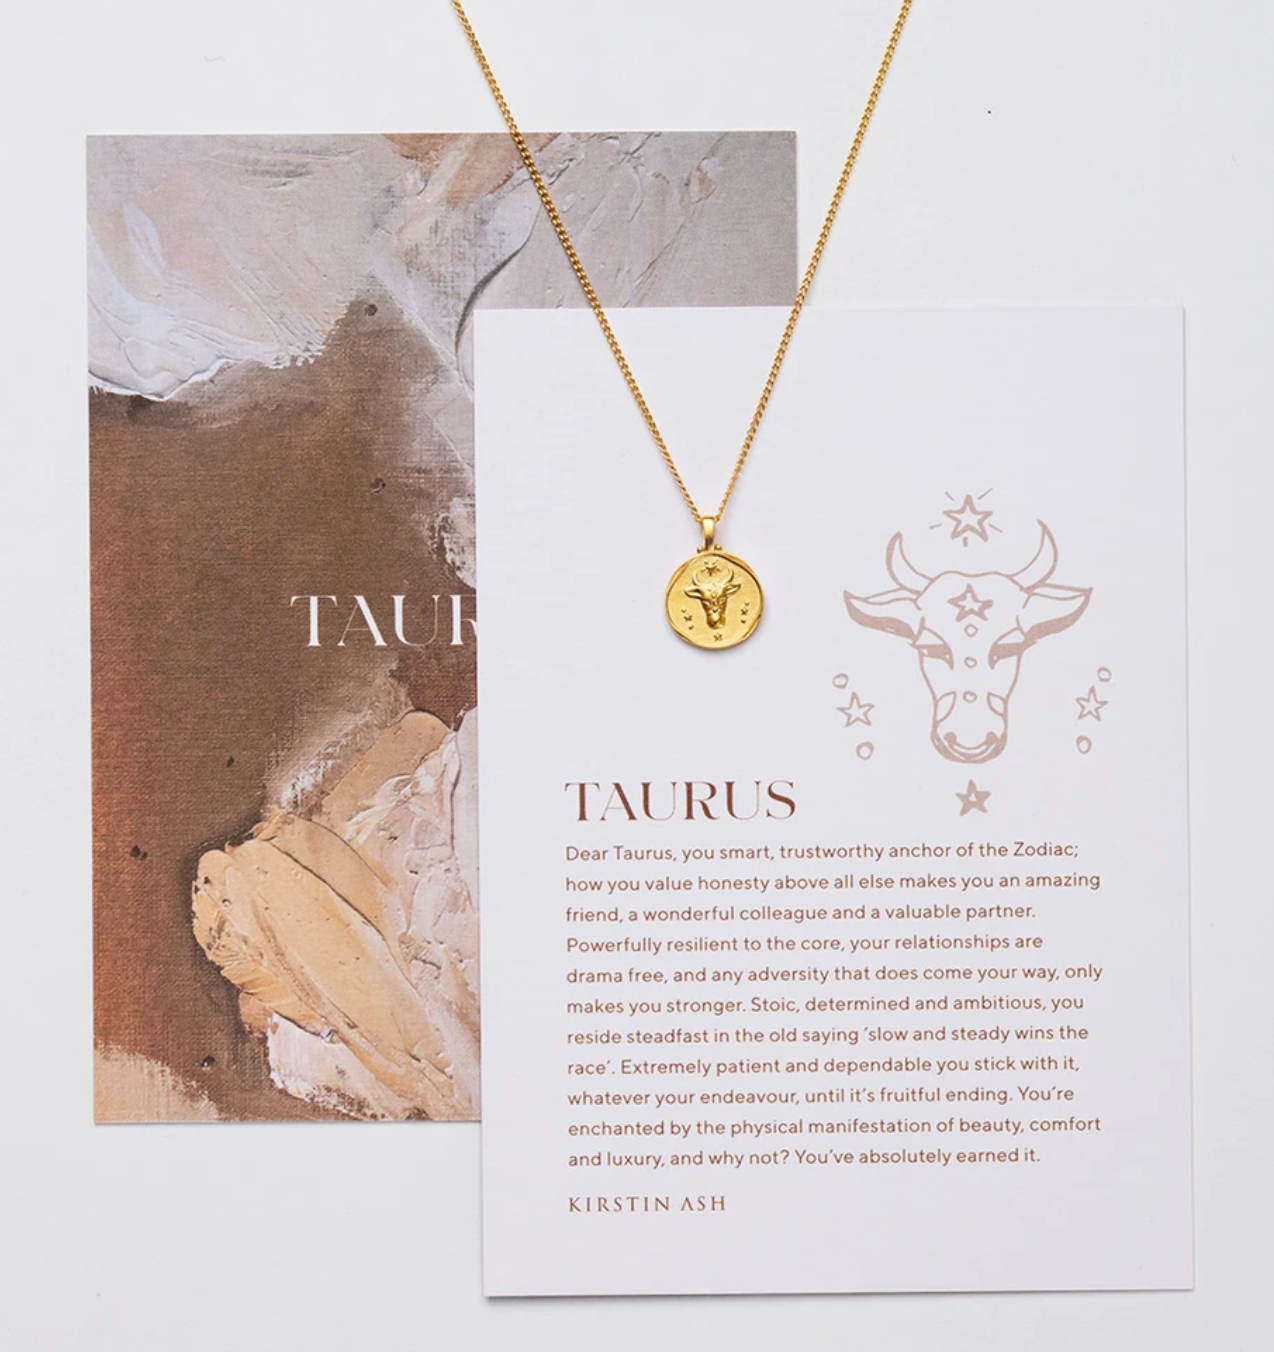 KIRSTIN ASH TAURUS ZODIAC NECKLACE - GOLD